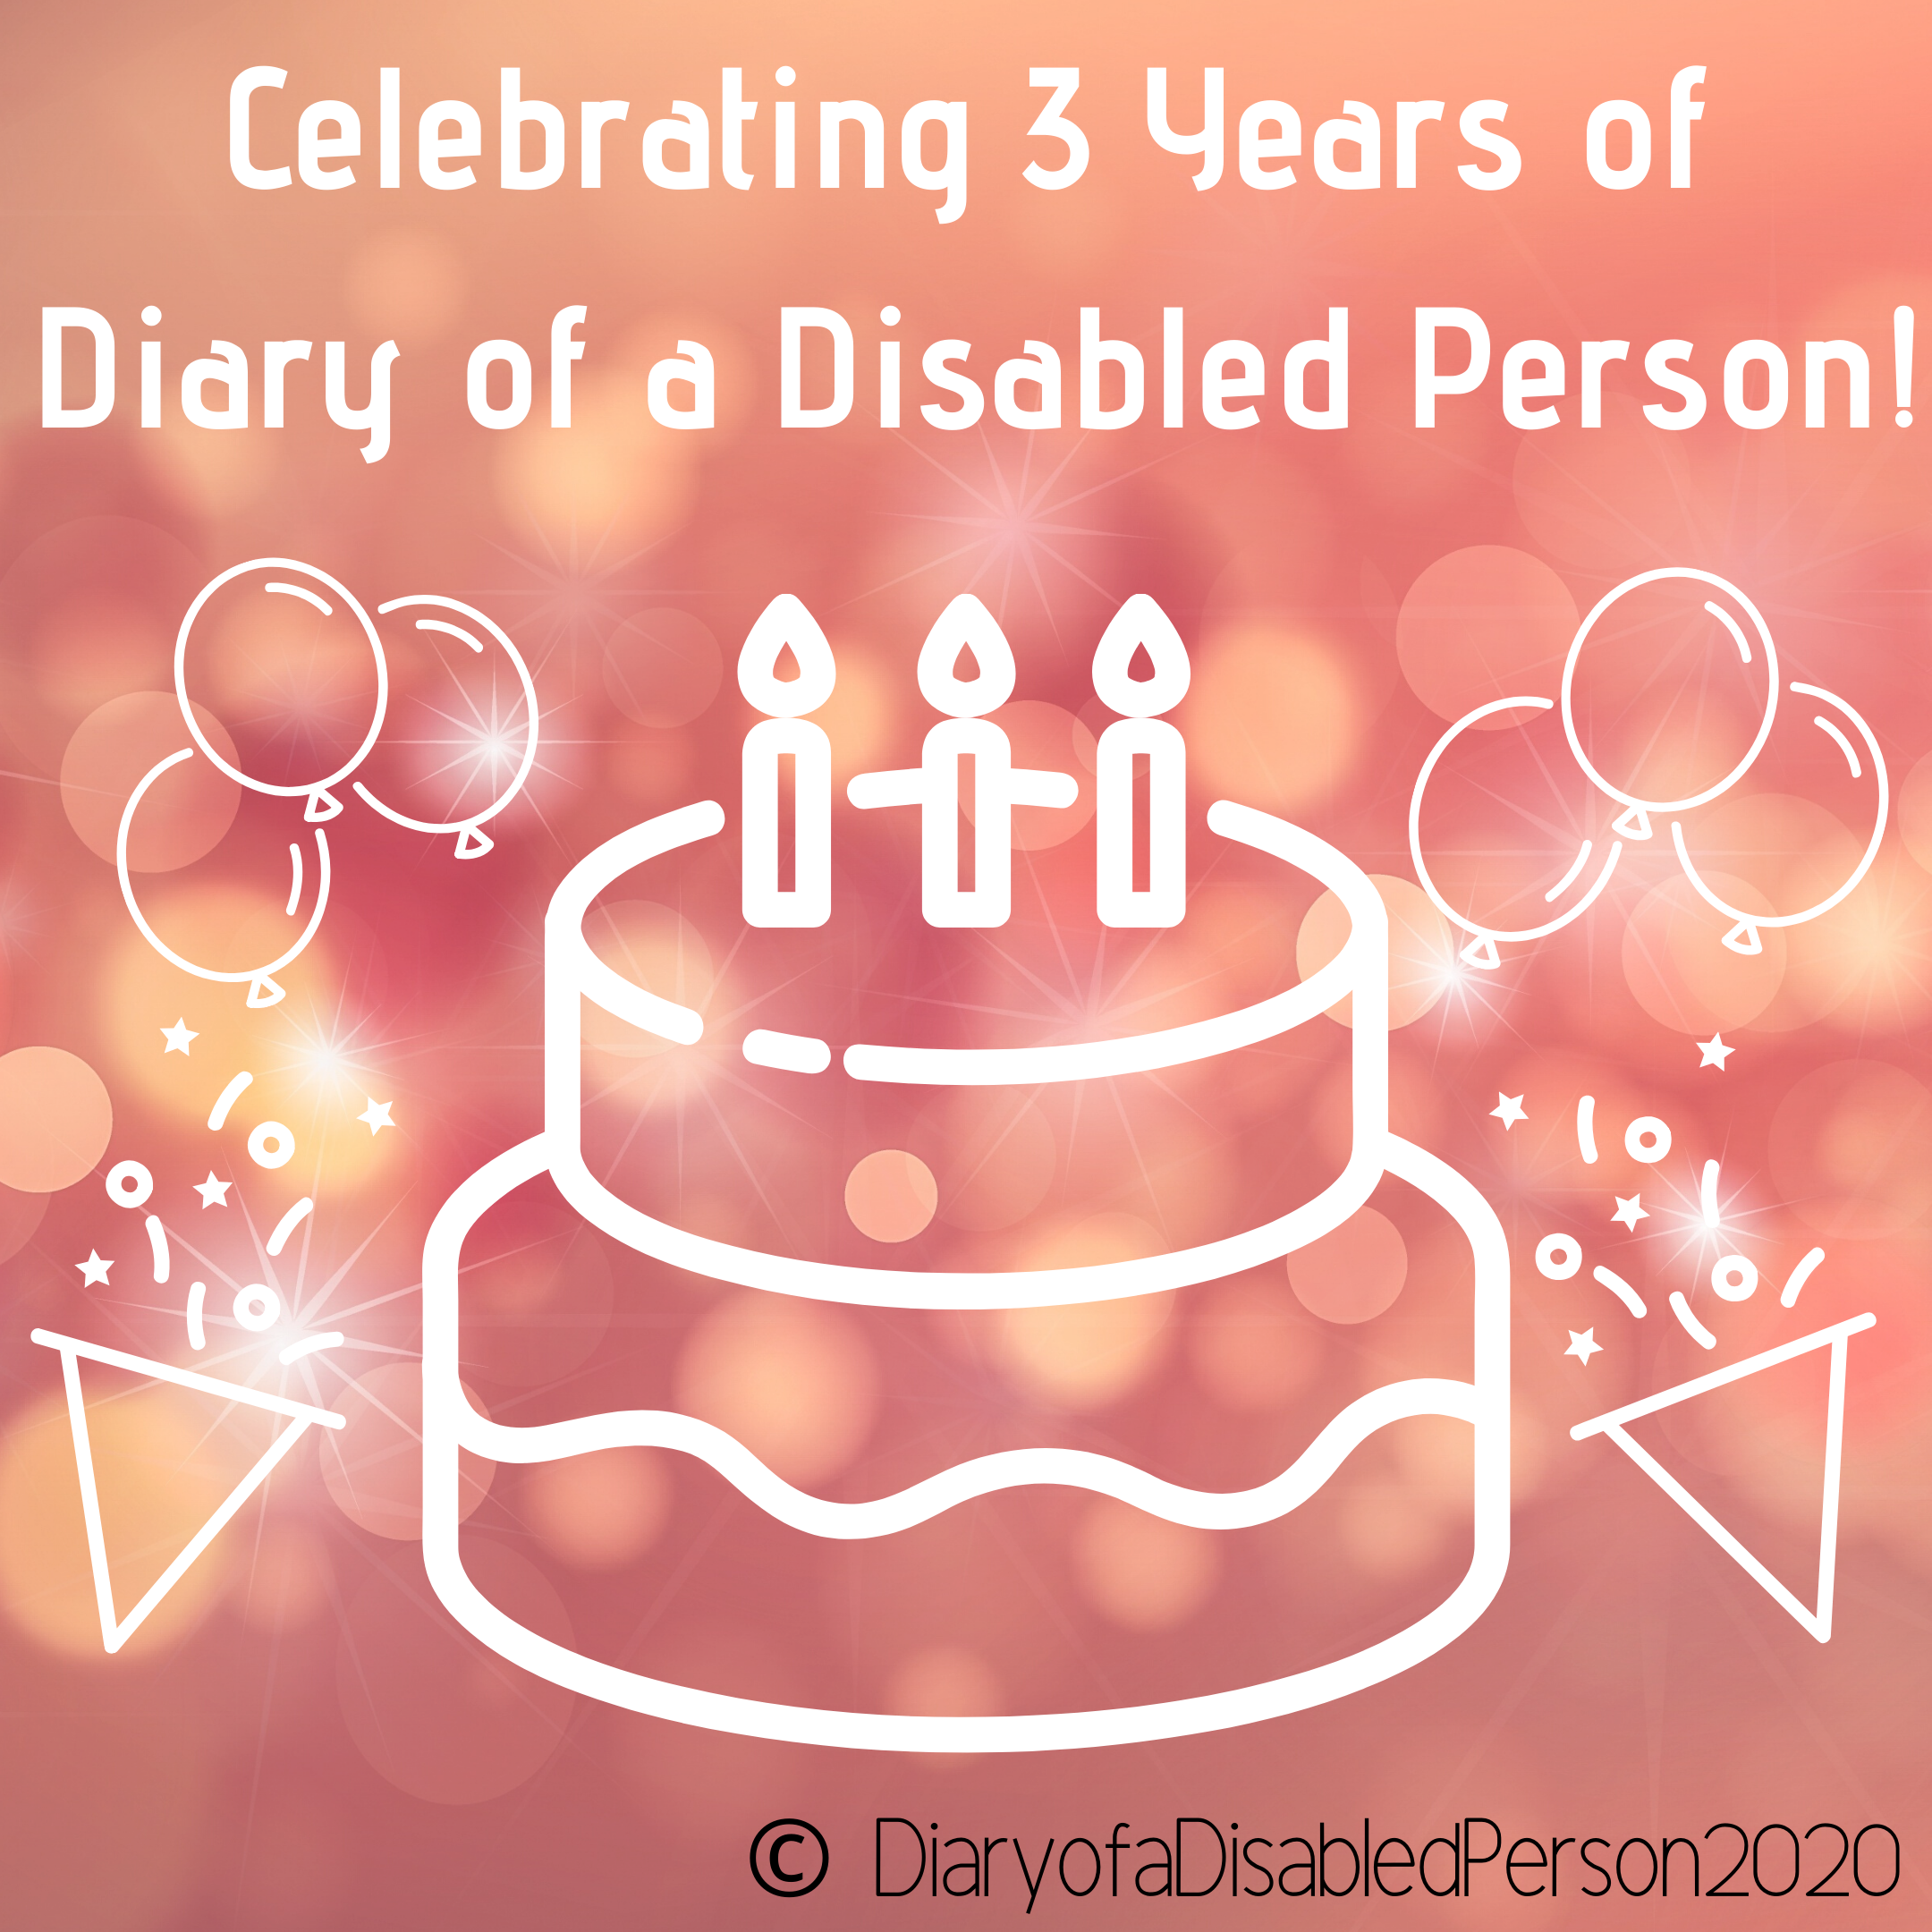 Celebrating 3 Years of Diary of a Disabled Person in white text, above a line drawing of cake, balloons, & party poppers, on a peach glittering background.